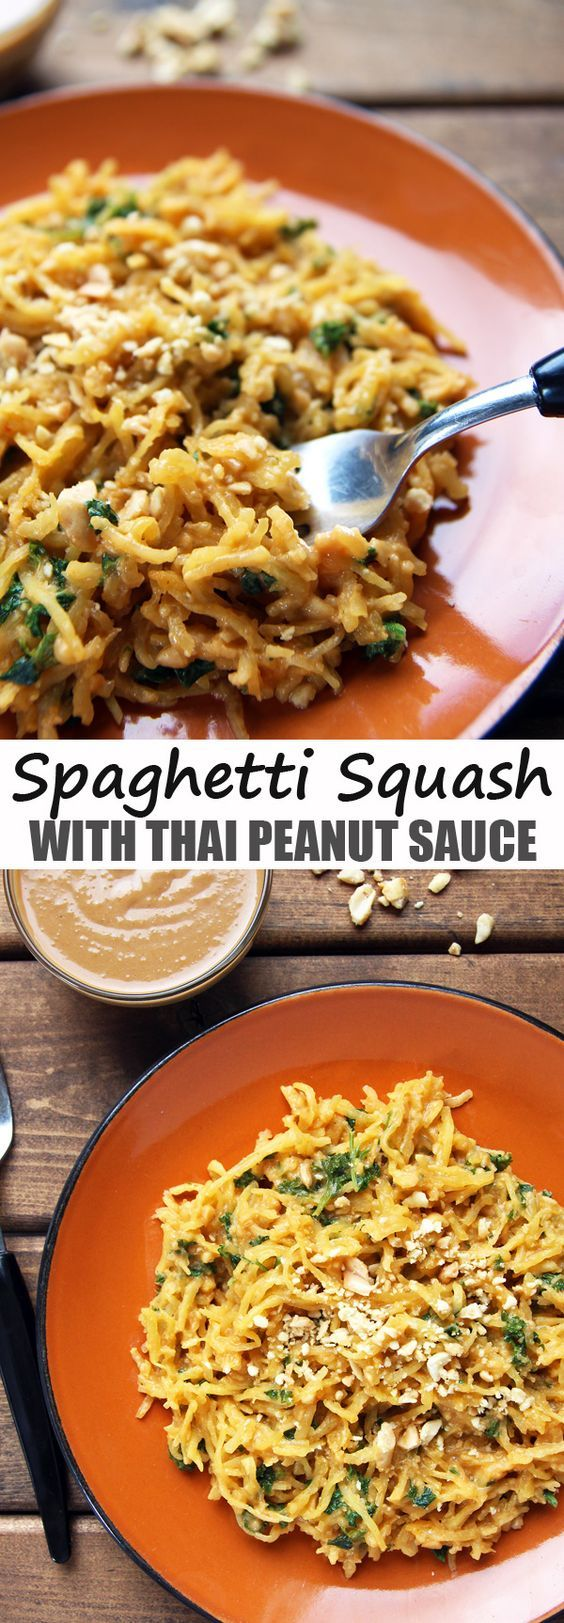 Spaghetti Squash with Thai Peanut Sauce - this amazing recipe turns spaghetti squash into a delicious Thai noodle dish that is vegan and gluten free.